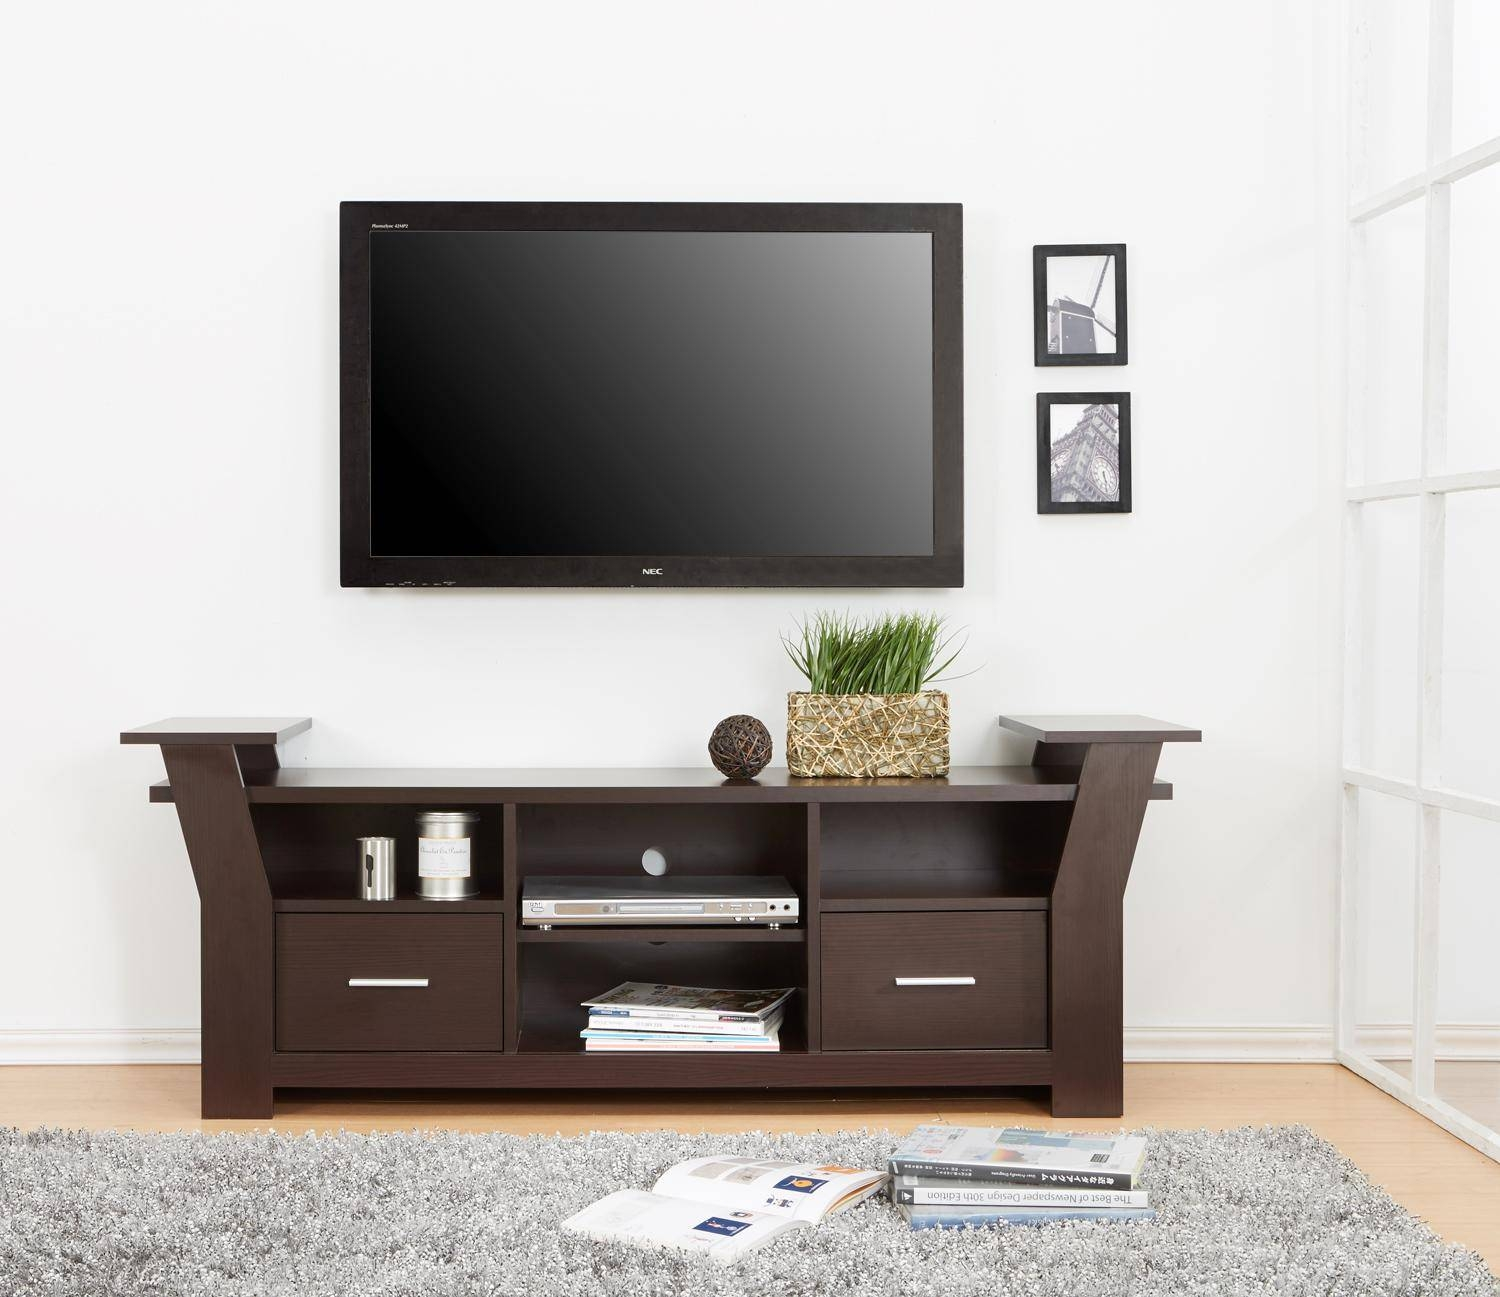 Modern Wooden Tv Stand With Storage Two Drawers And Four Shelves With Regard To Tv Stands With Drawers And Shelves (View 2 of 15)